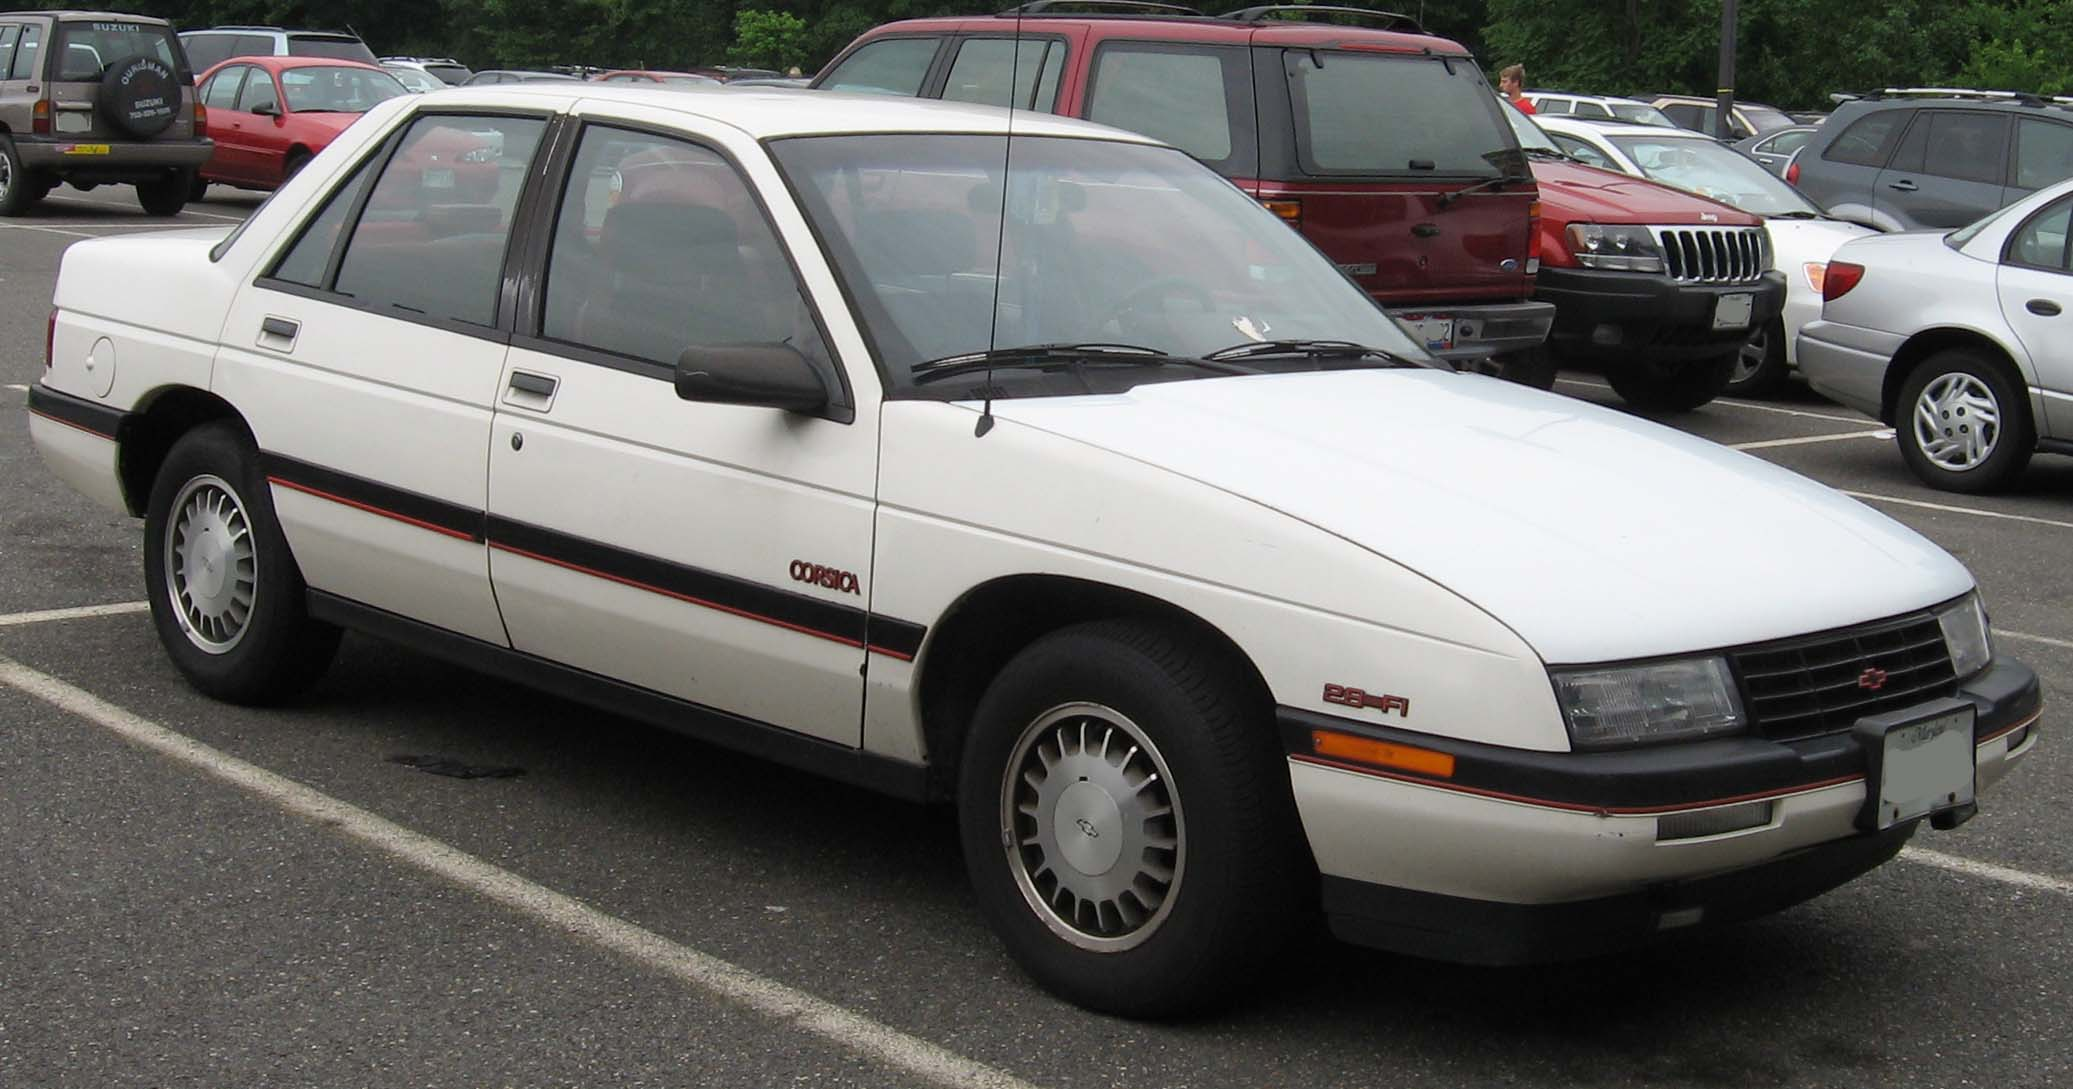 Opinions on chevrolet corsica